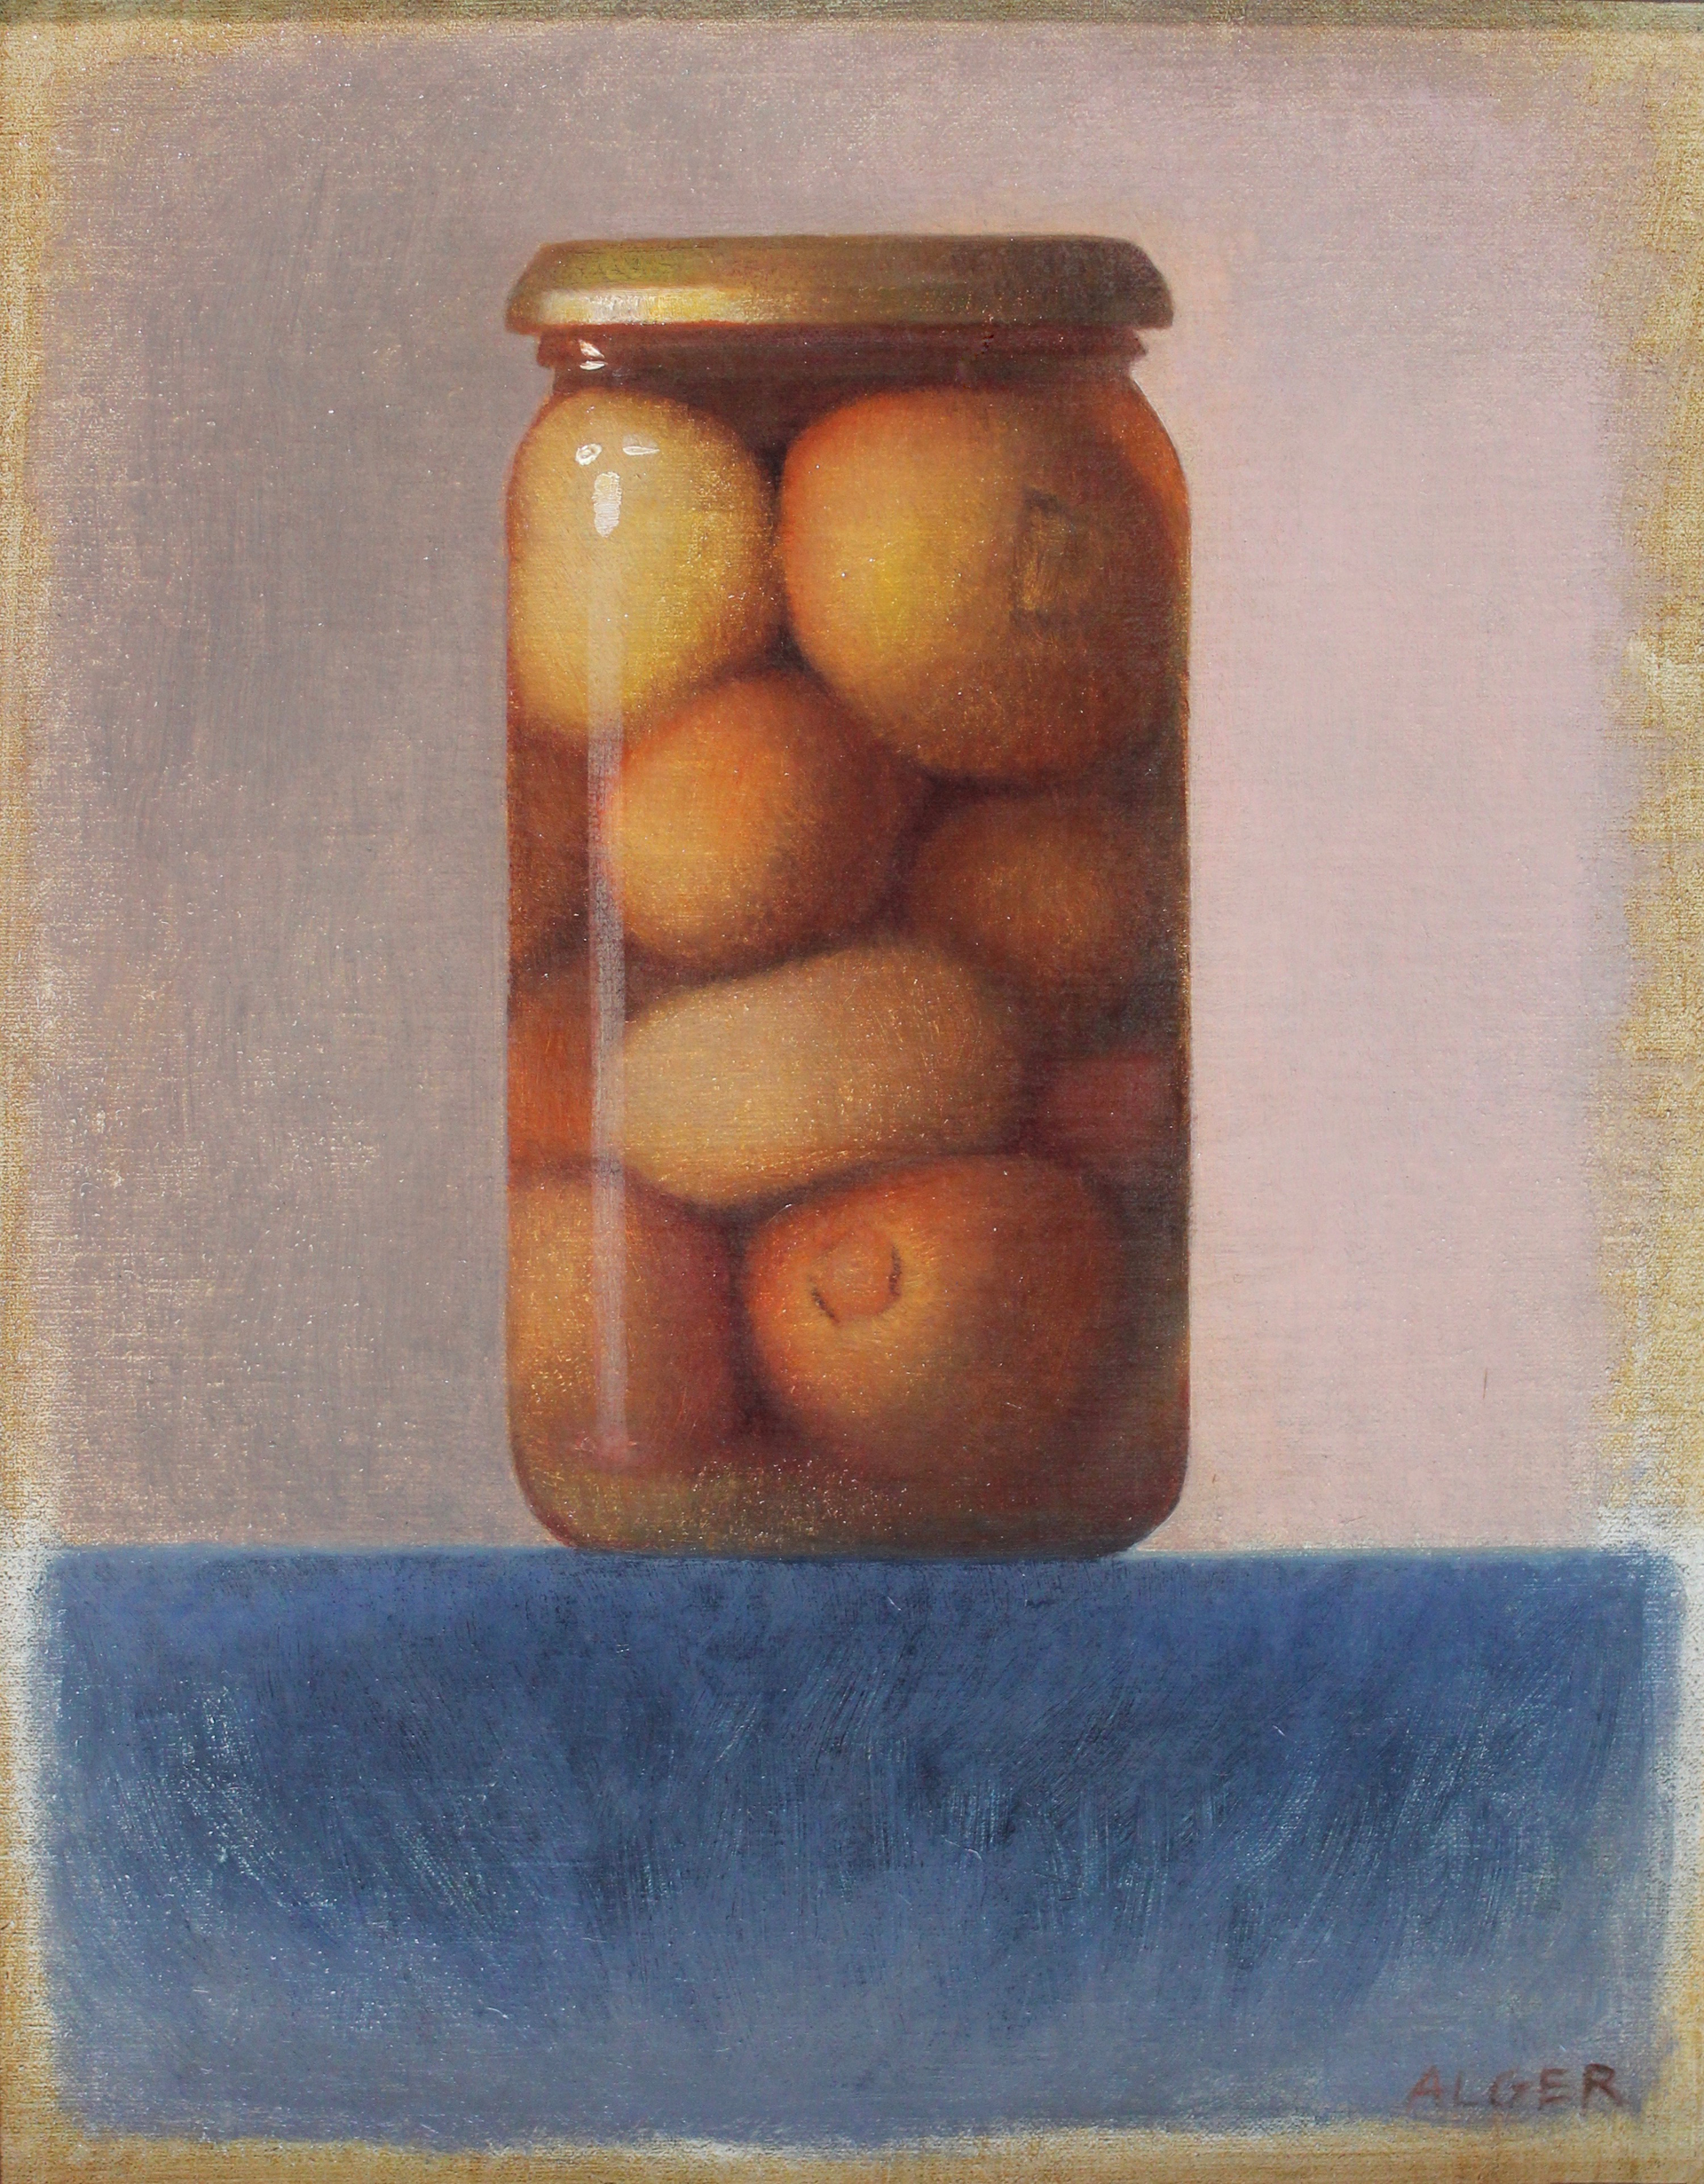 Pickled Onions by Nicole Alger